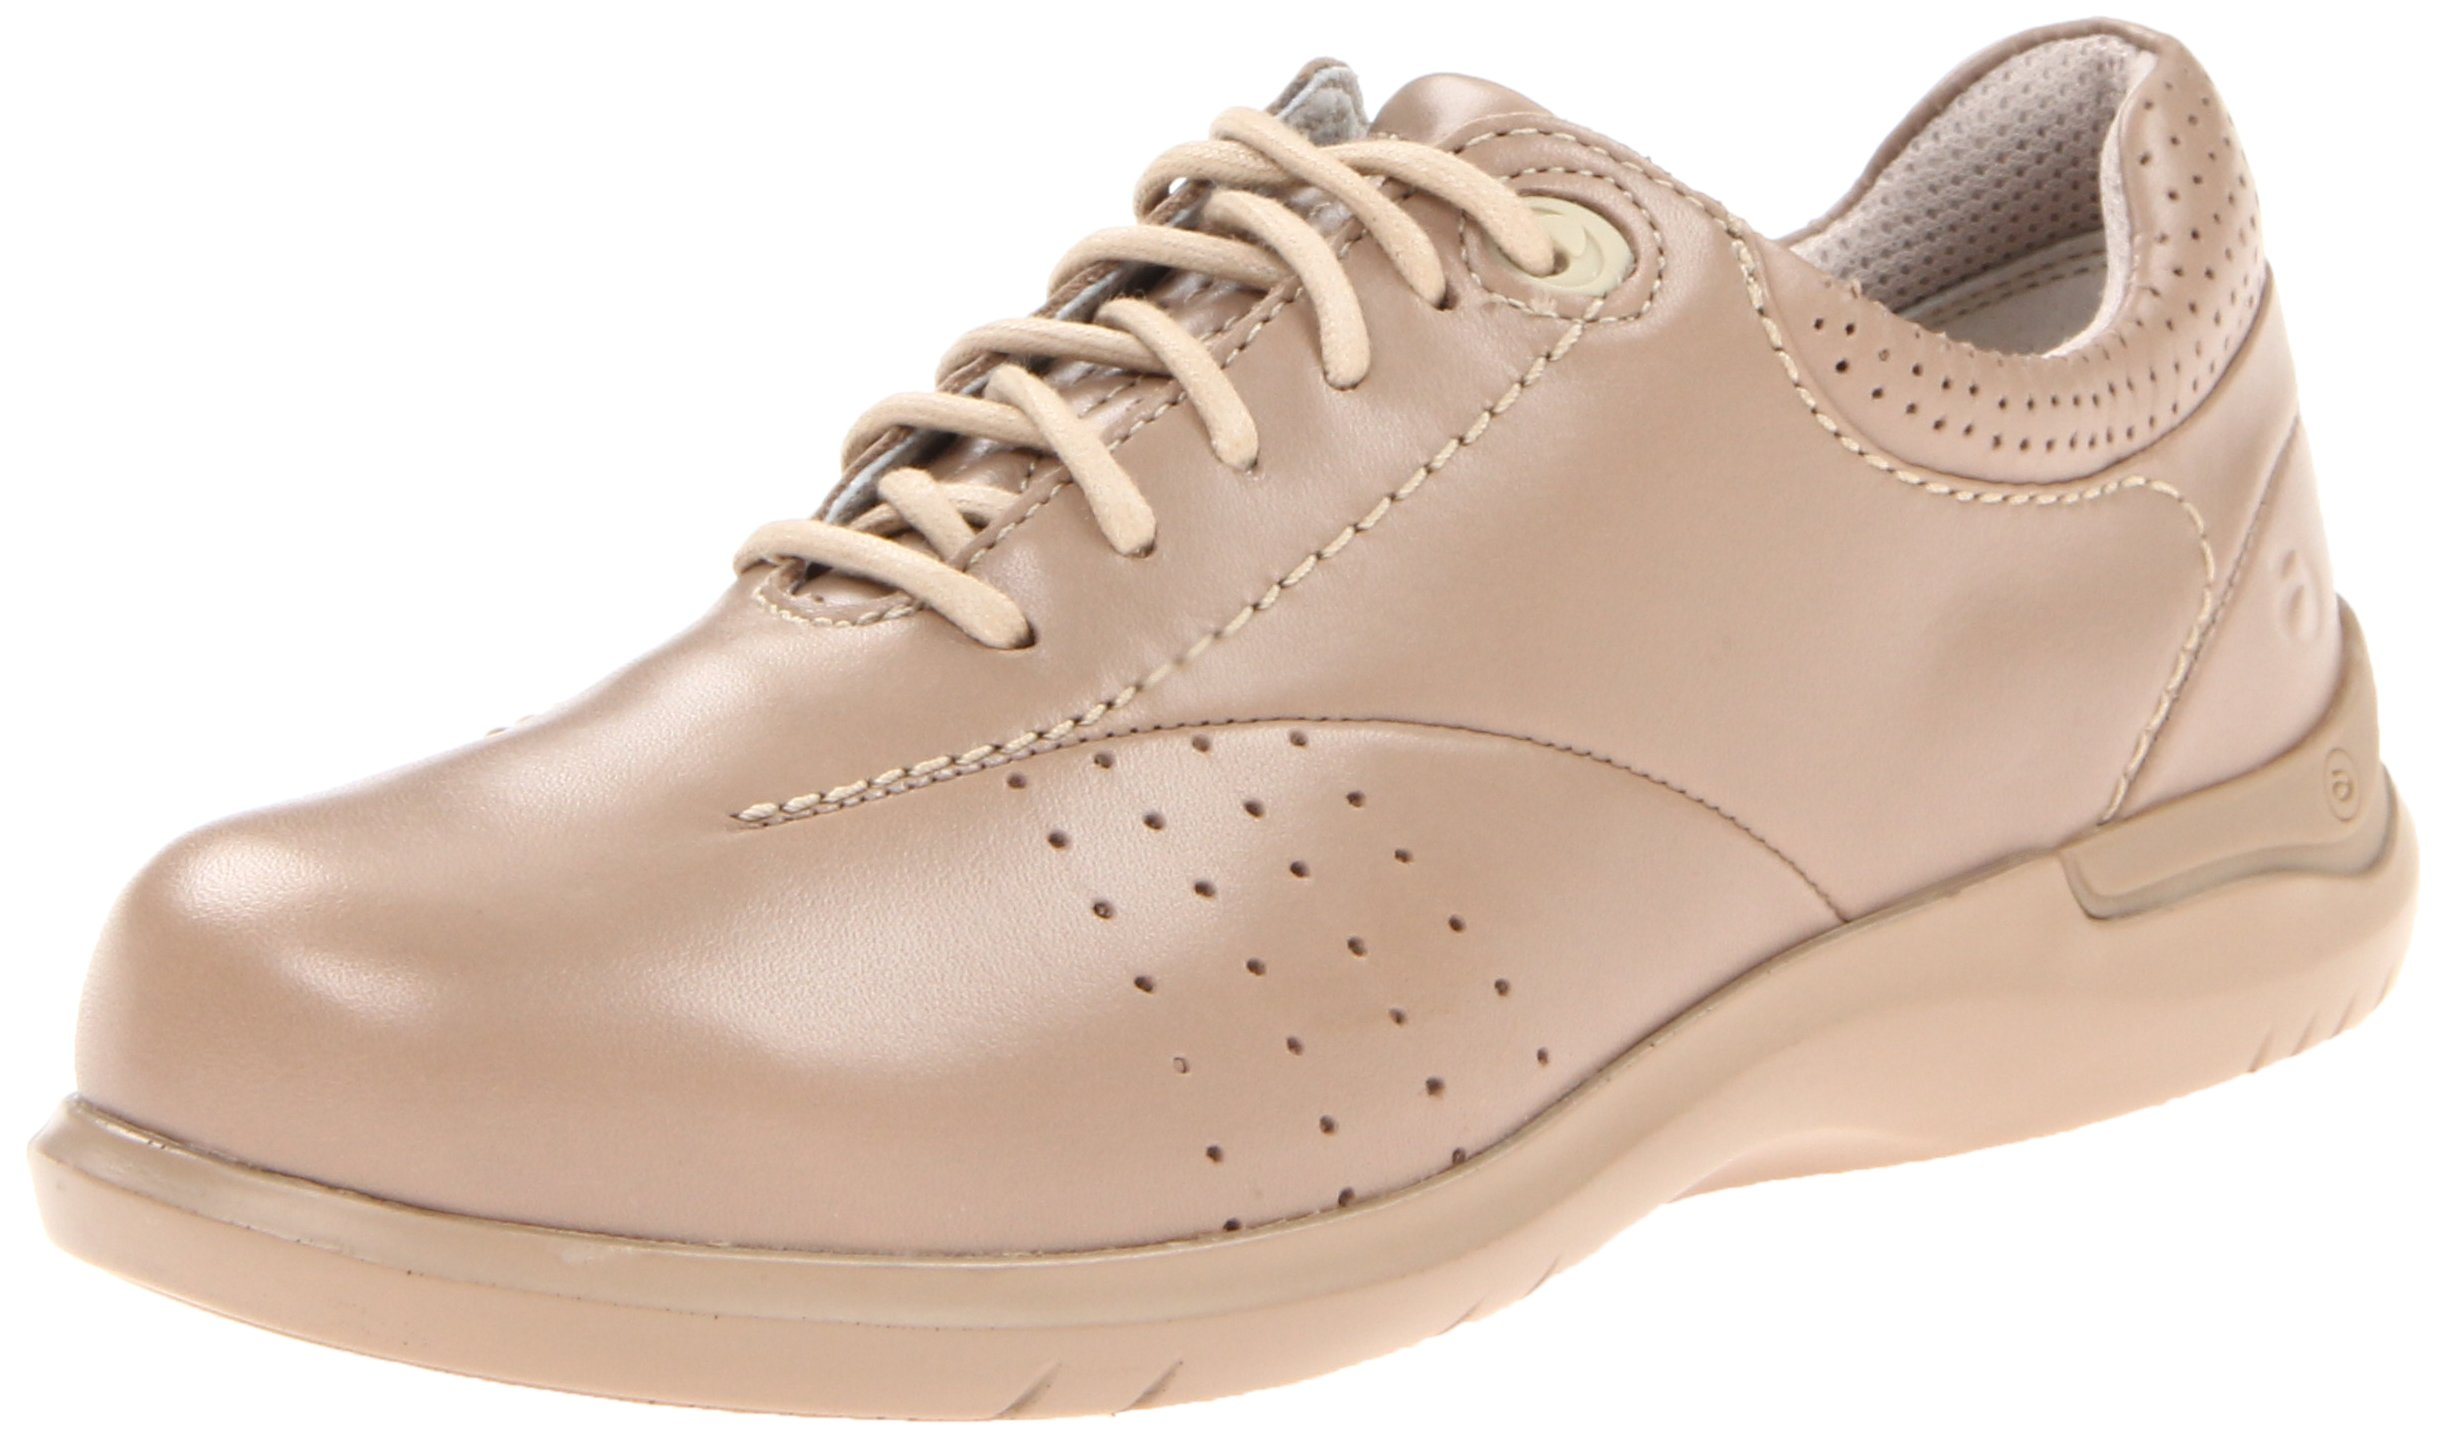 Aravon Women's Farren Lace-Up,Sand Leather,7